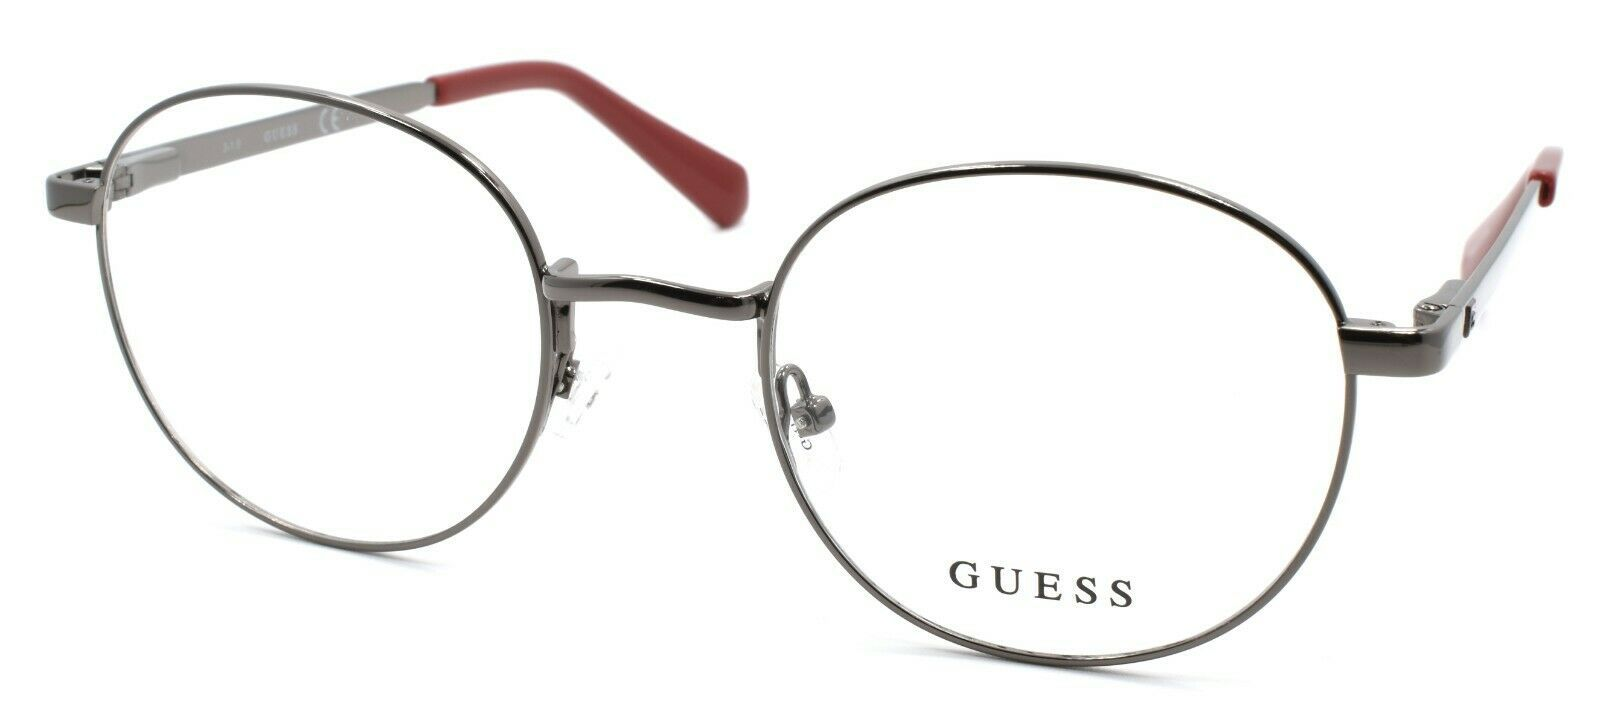 Primary image for GUESS GU1969 006 Men's Eyeglasses Frames Round 50-21-145 Shiny Dark Nickeltin